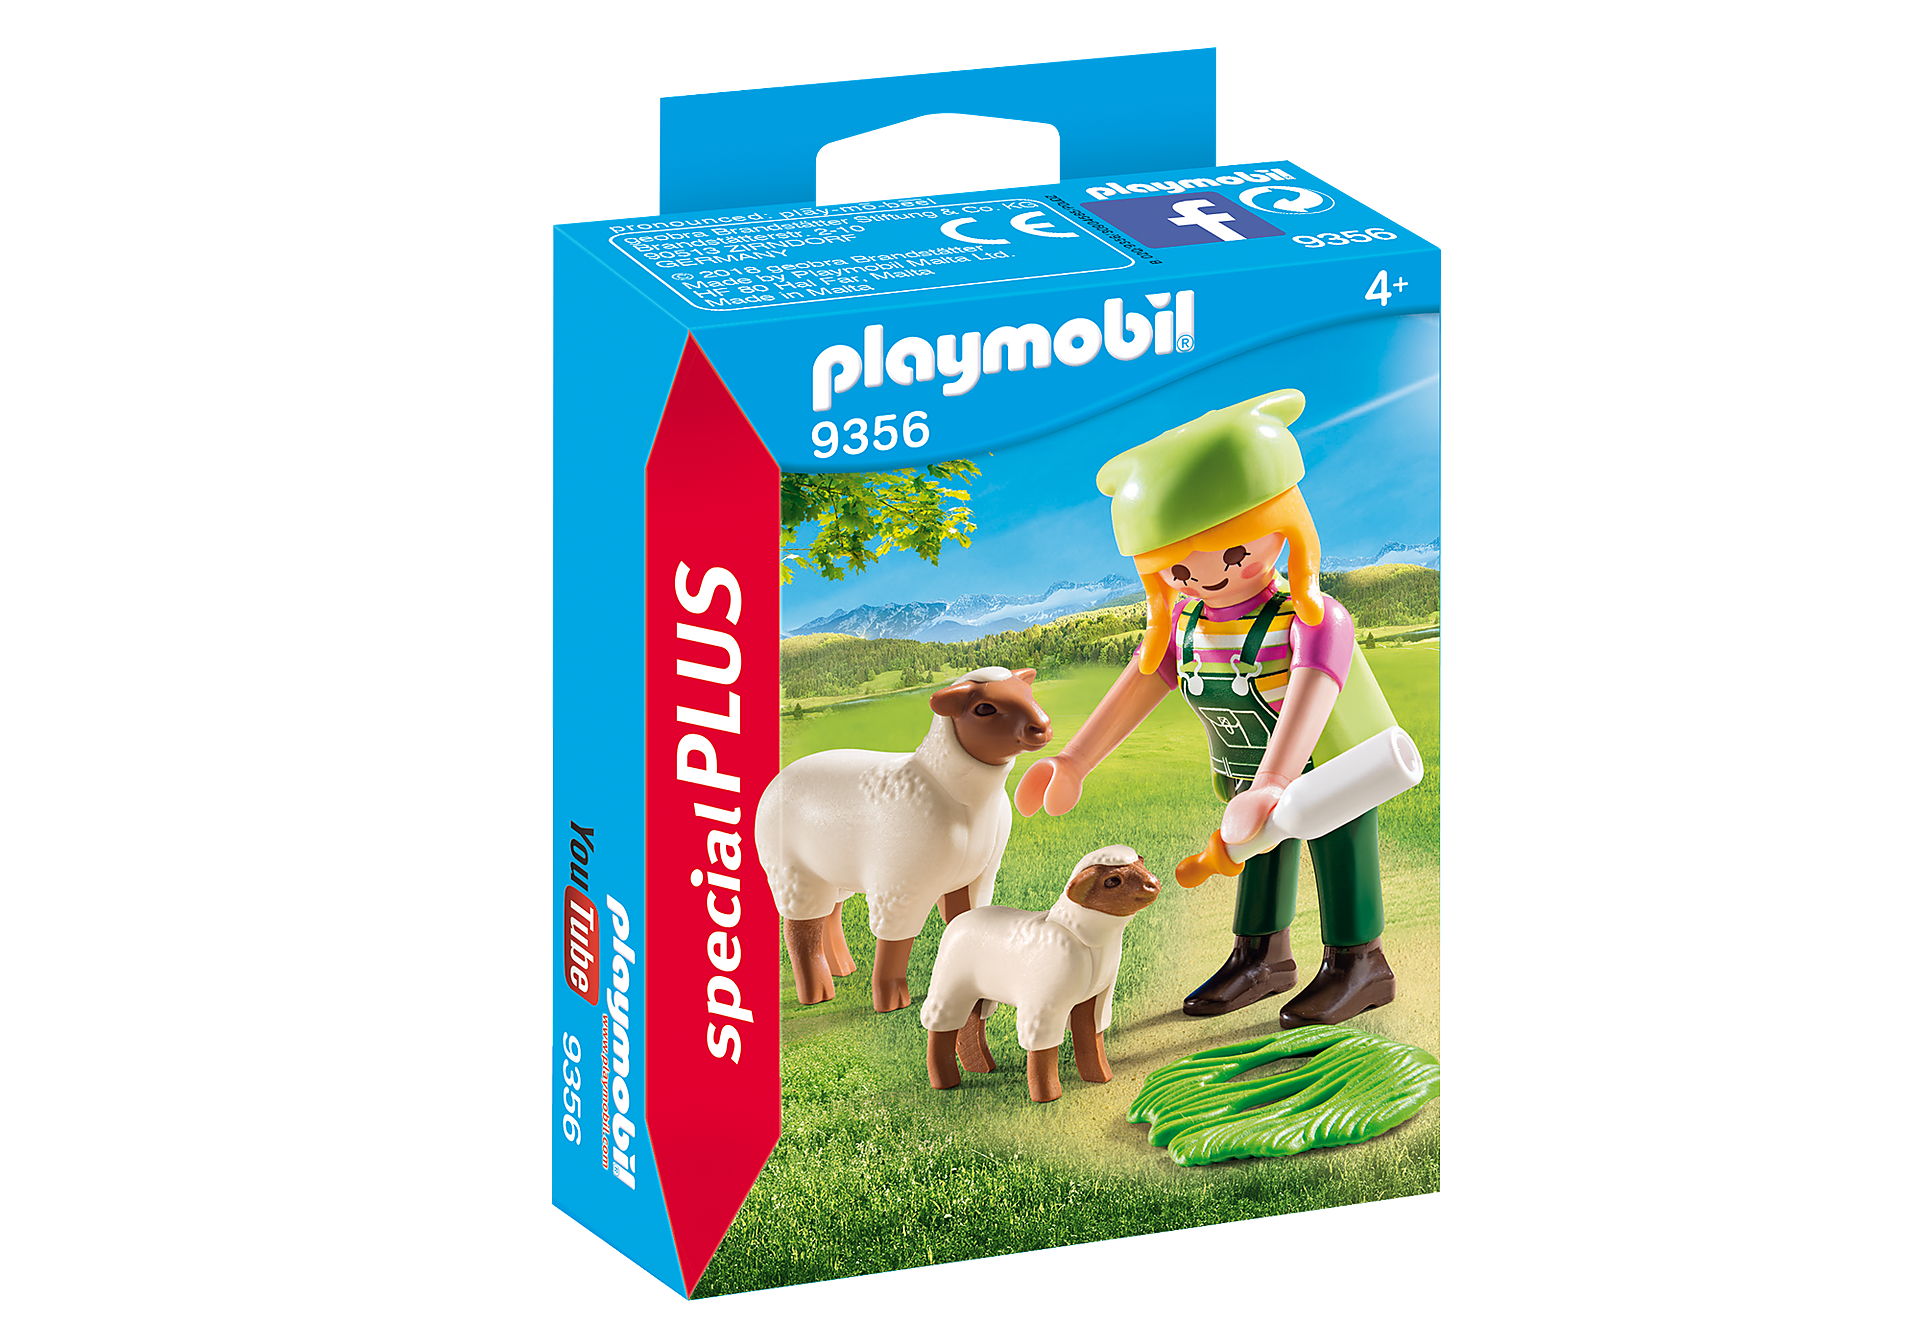 http://media.playmobil.com/i/playmobil/9356_product_box_front/Bäuerin mit Schäfchen